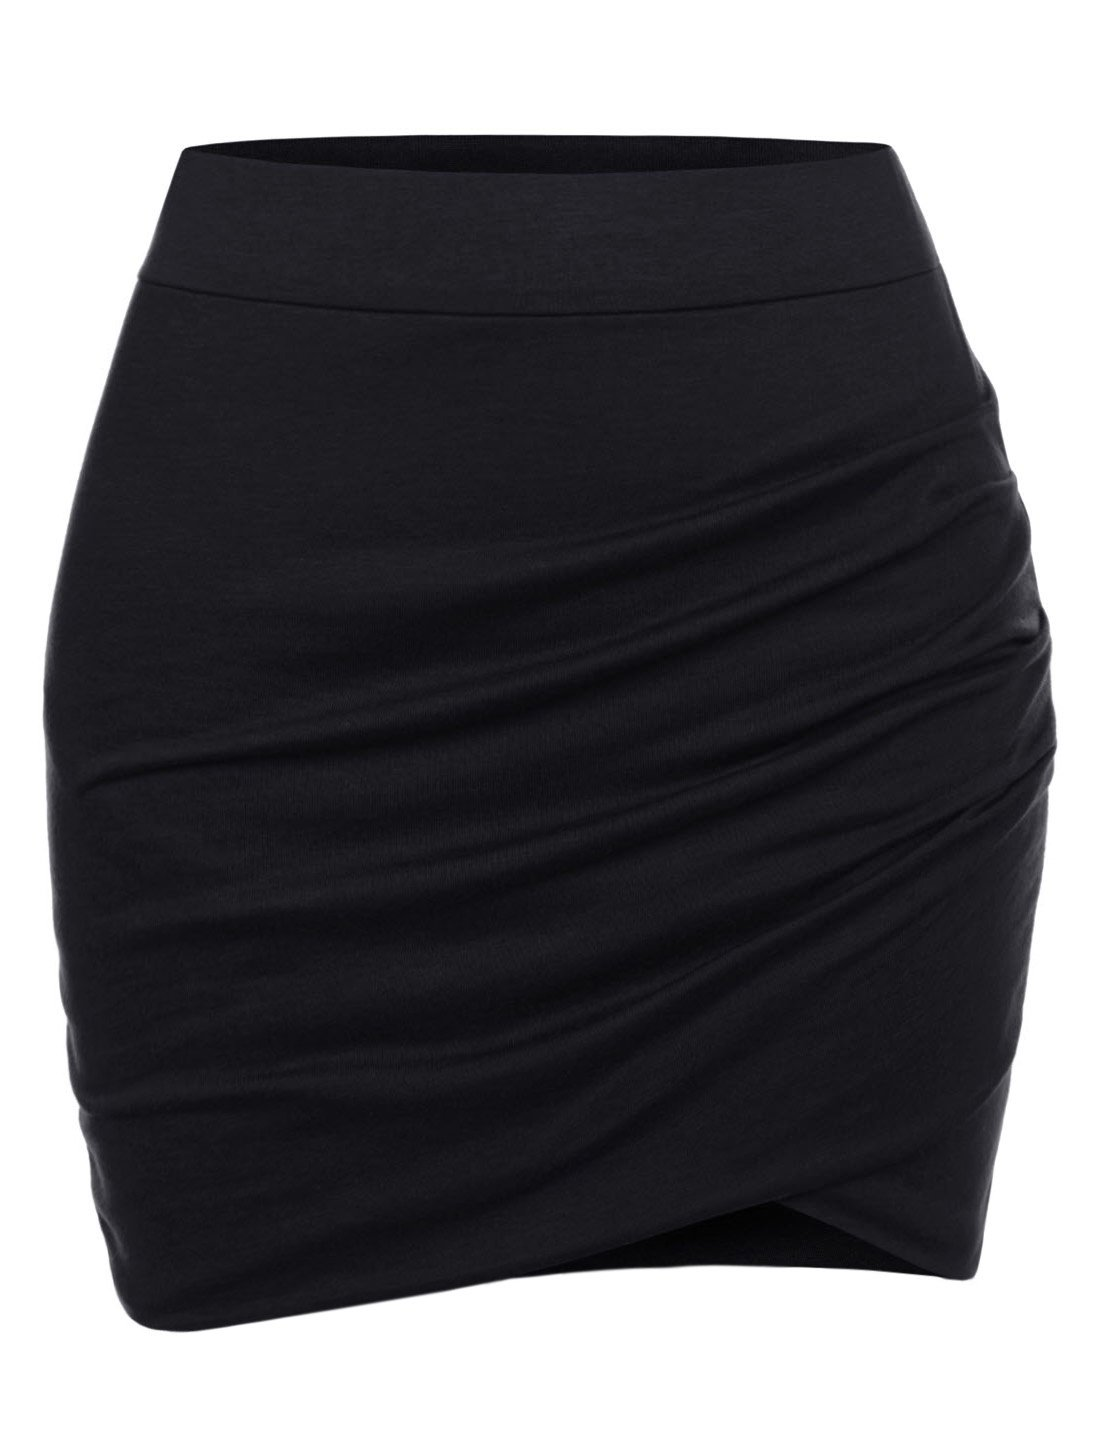 NEARKIN (NKNKSSK64) Womens Stretchy Waistband Shirring Fitted Mini Skirt BLACK US XL(Tag size 2XL)